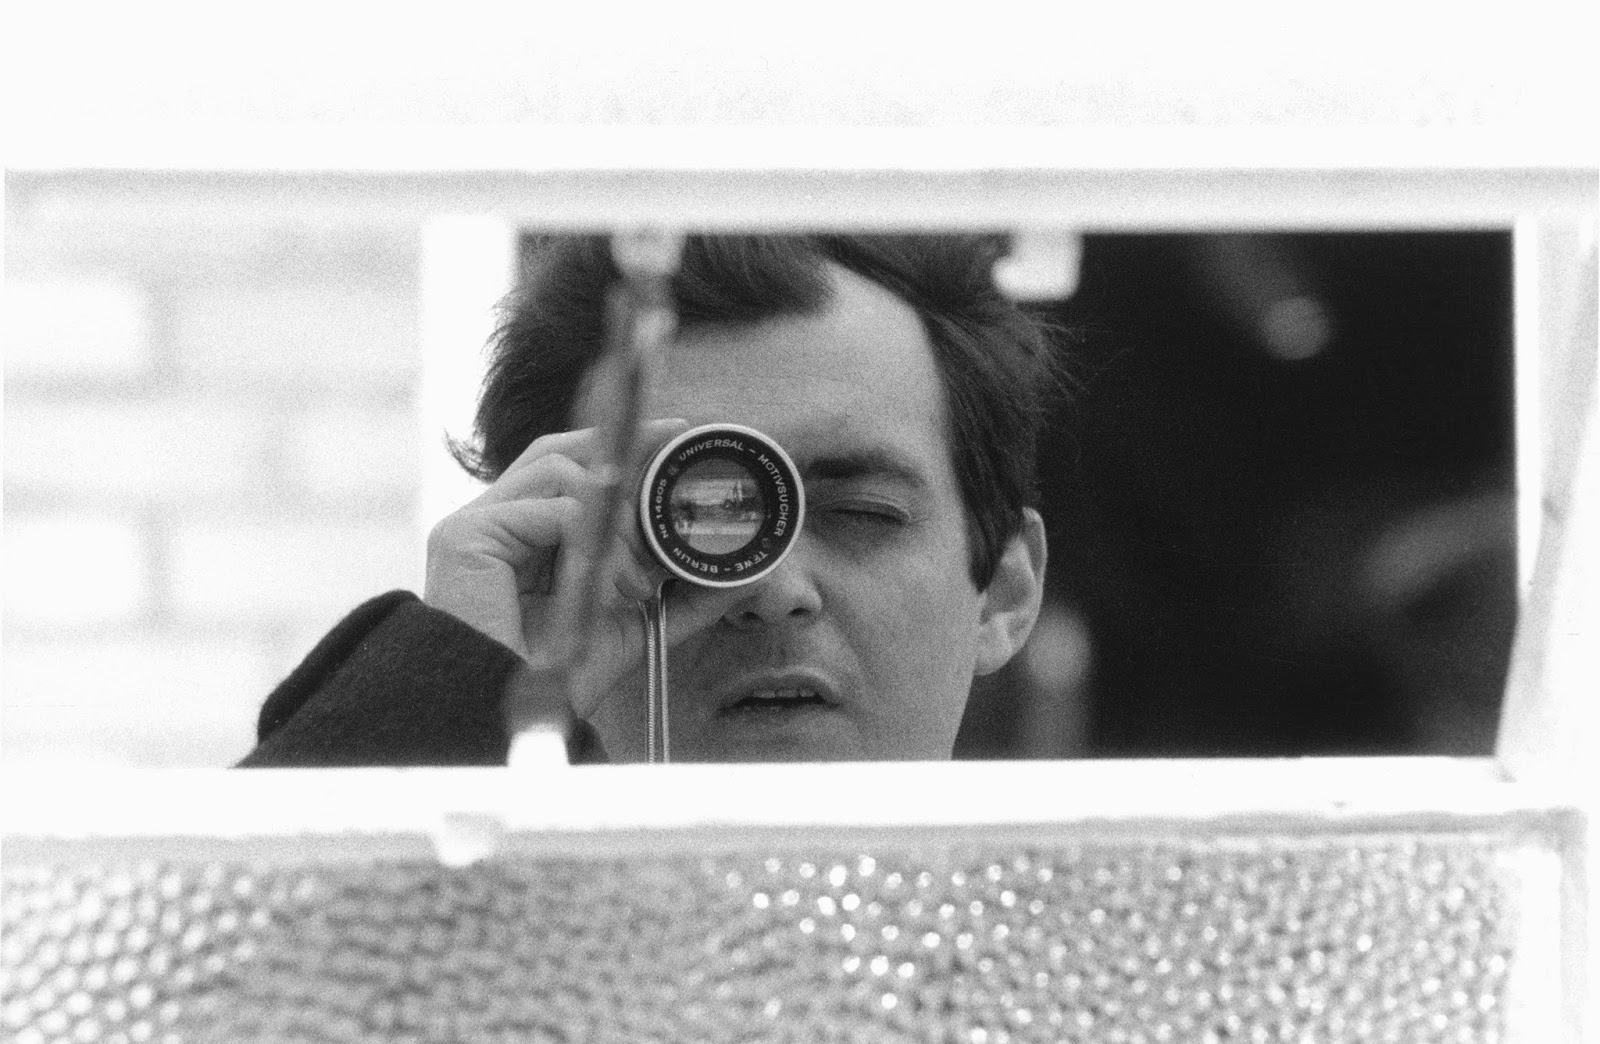 sex with lolita Stanley Kubrick with his viewfinder during the production of Lolita  (GB/United States; 1960-62). © Warner Bros. Entertainment Inc.